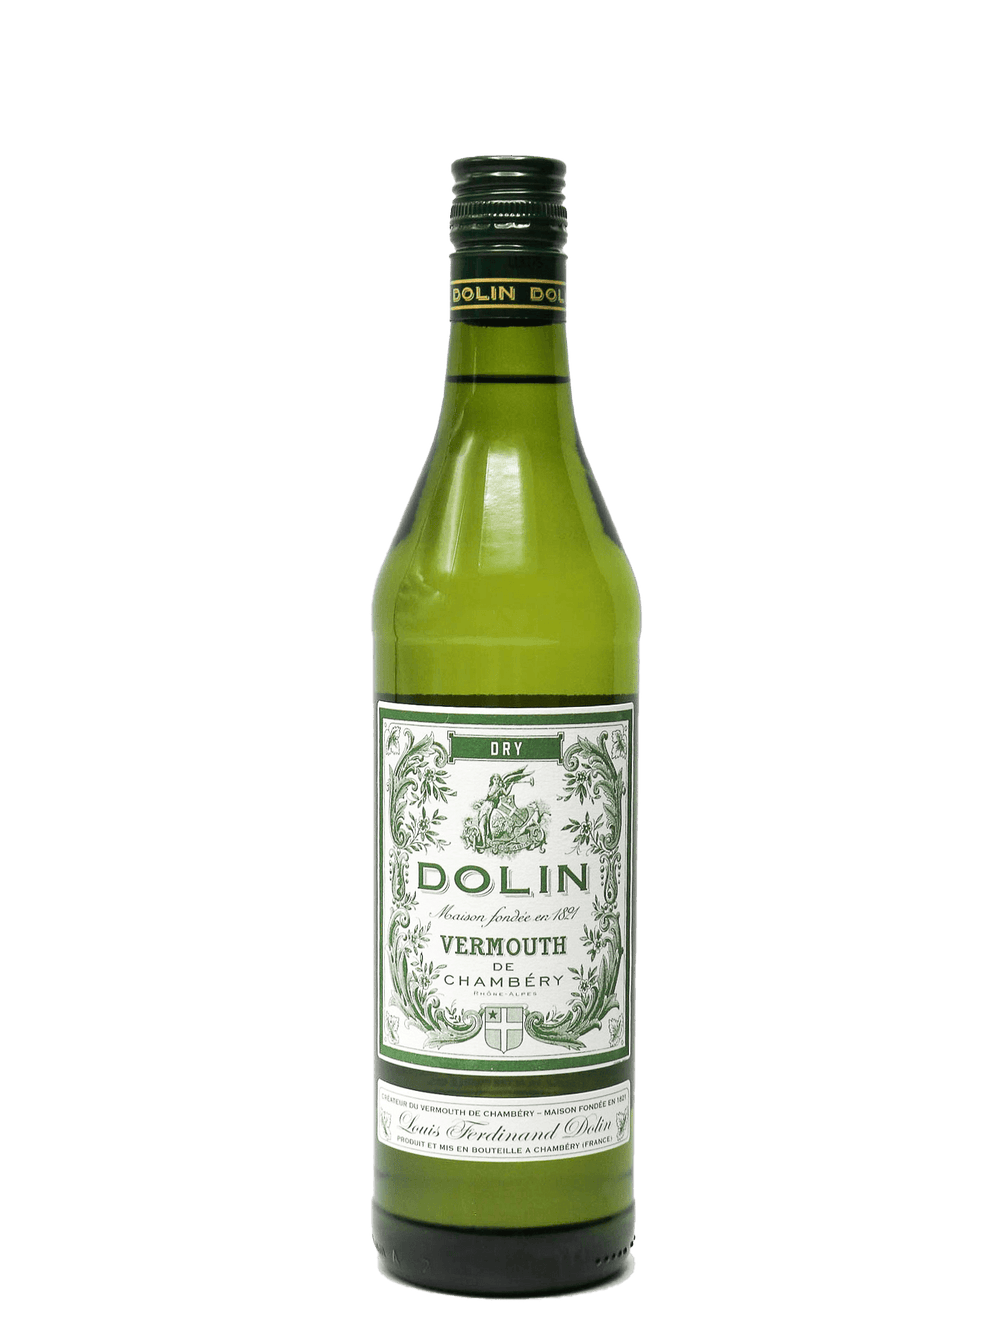 Dolin Dry Vermouth 750ml